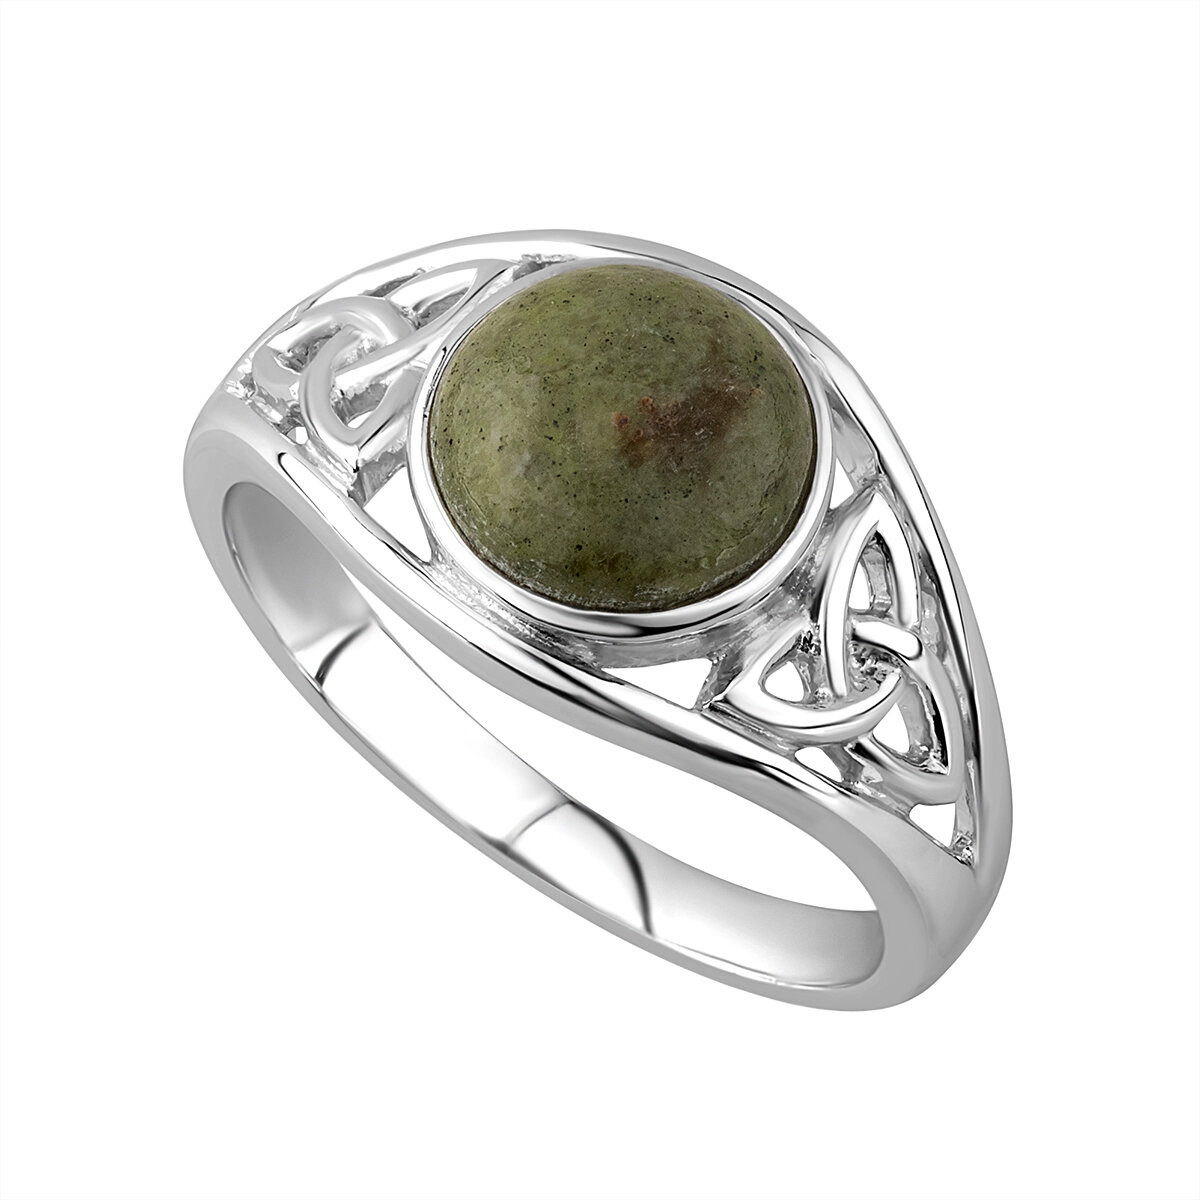 sterling silver connemara marble celtic trinity knot ring s2832 from Solvar